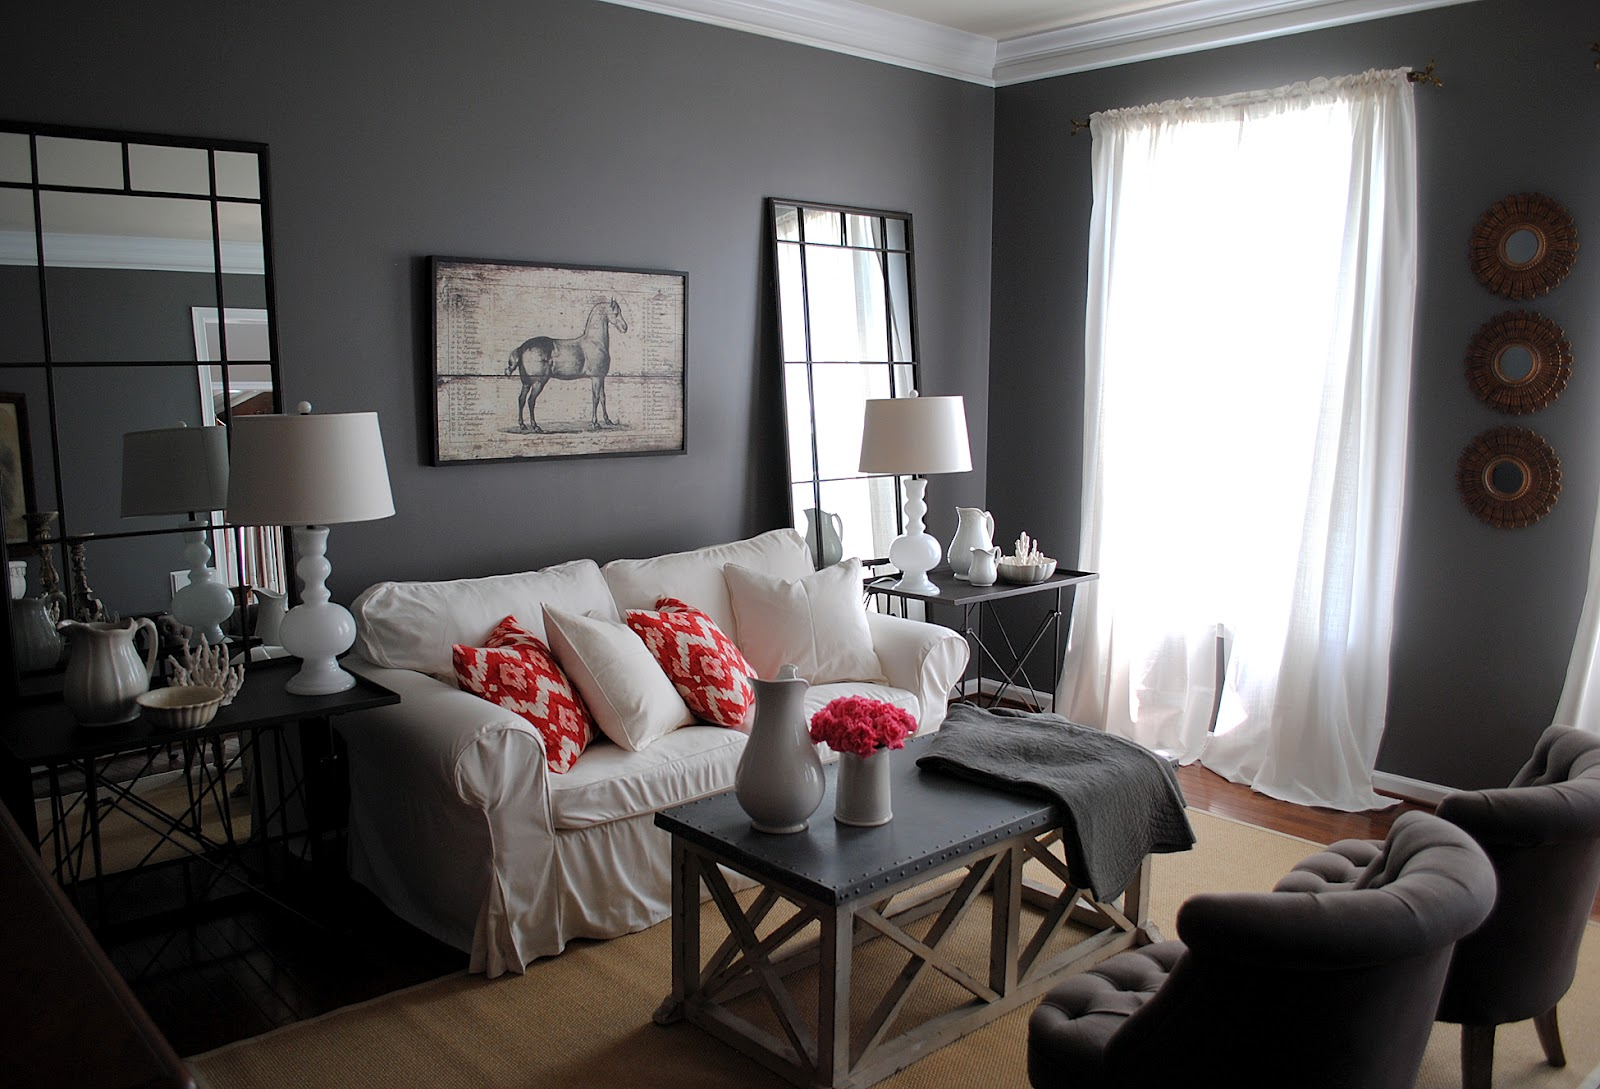 Paint Finish For Living Room A Matte R Of Style 5 Ways To Add Matte Finish To Your Home